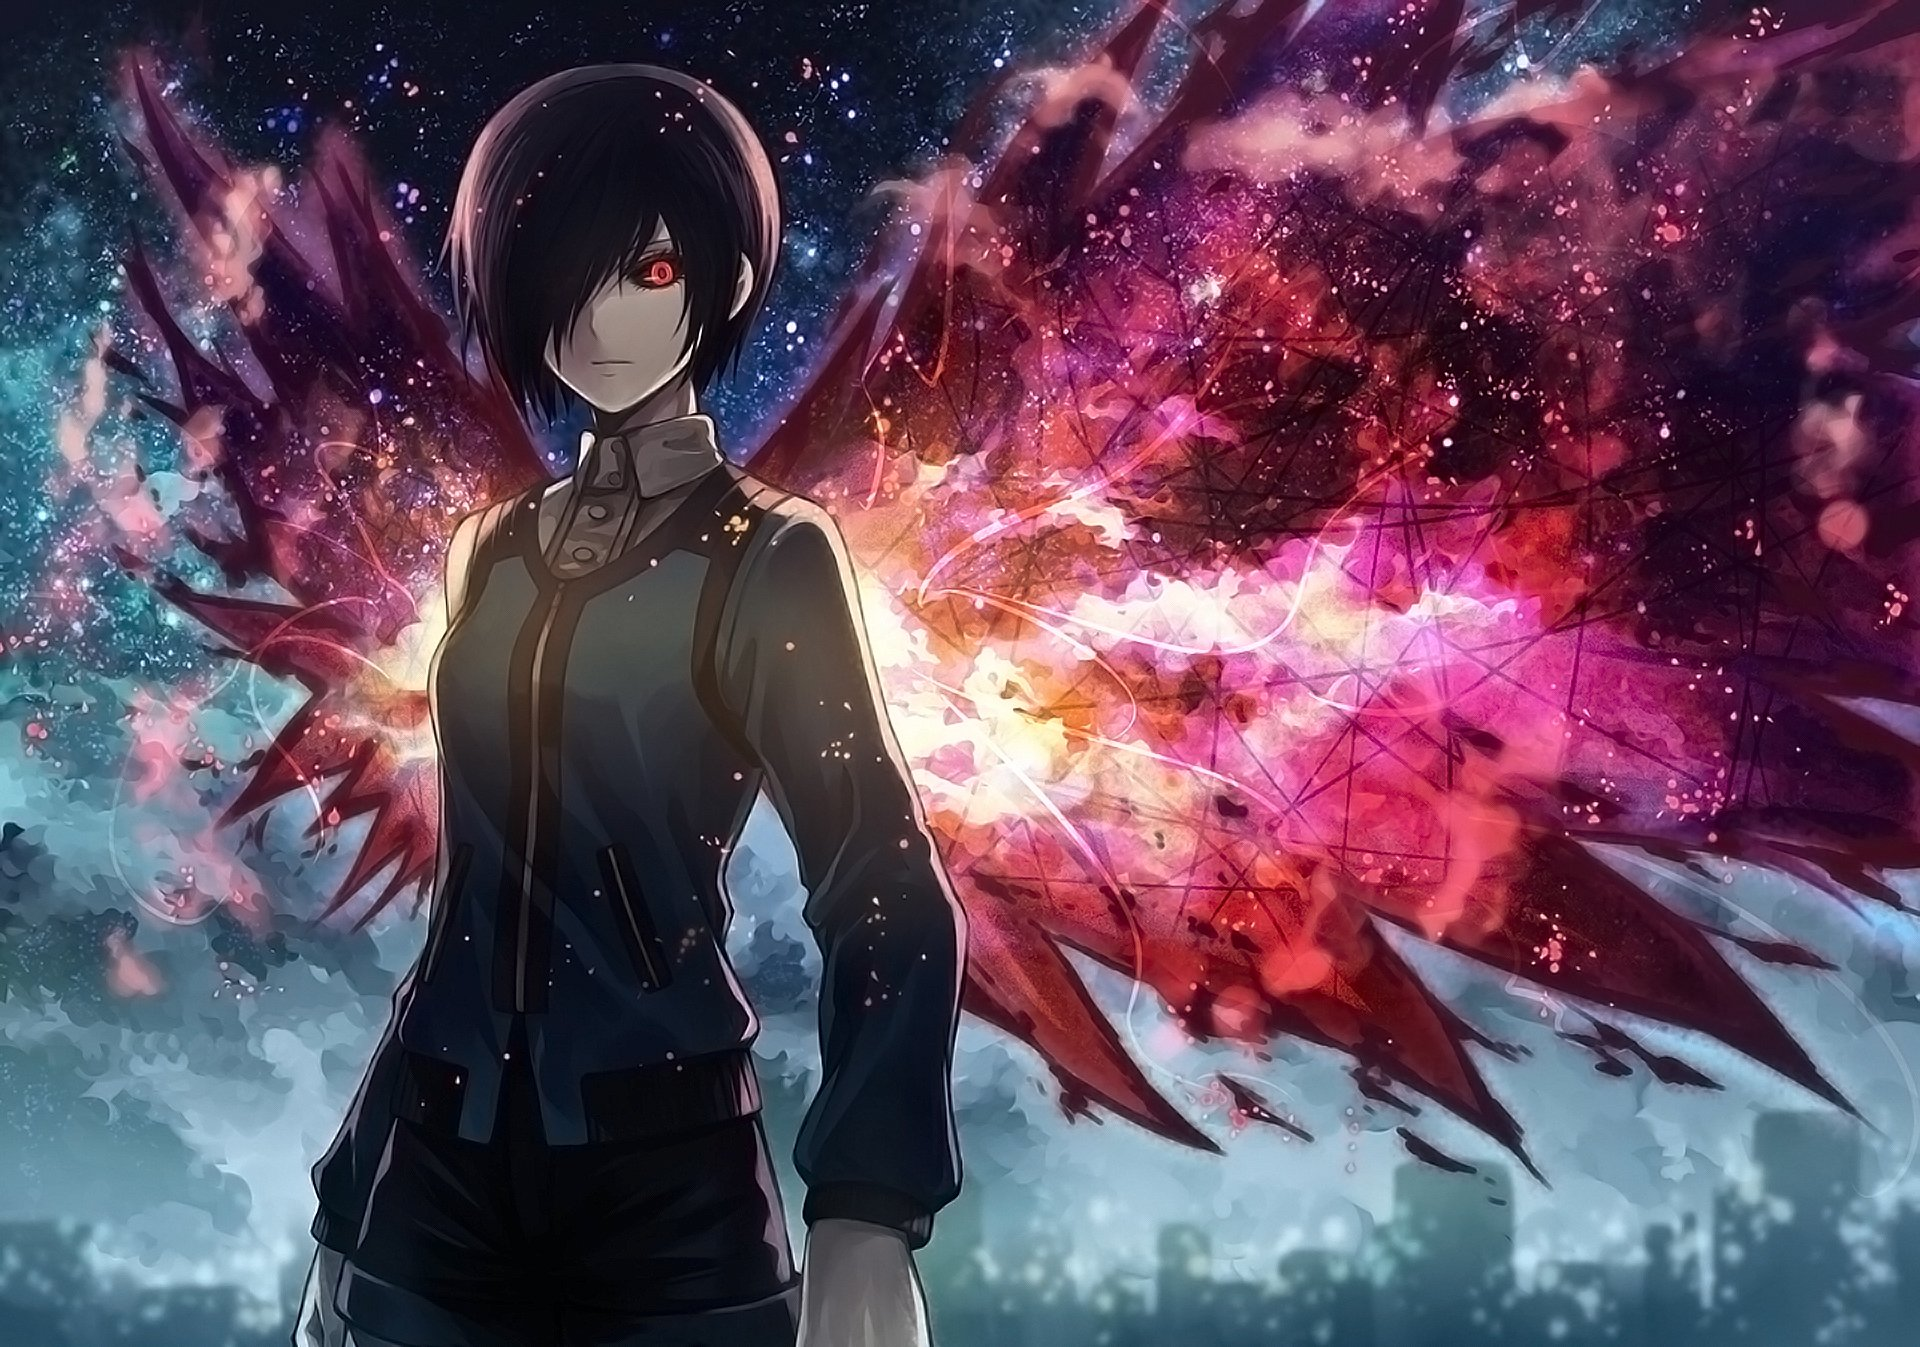 992 Tokyo Ghoul Hd Wallpapers Background Images Wallpaper Abyss